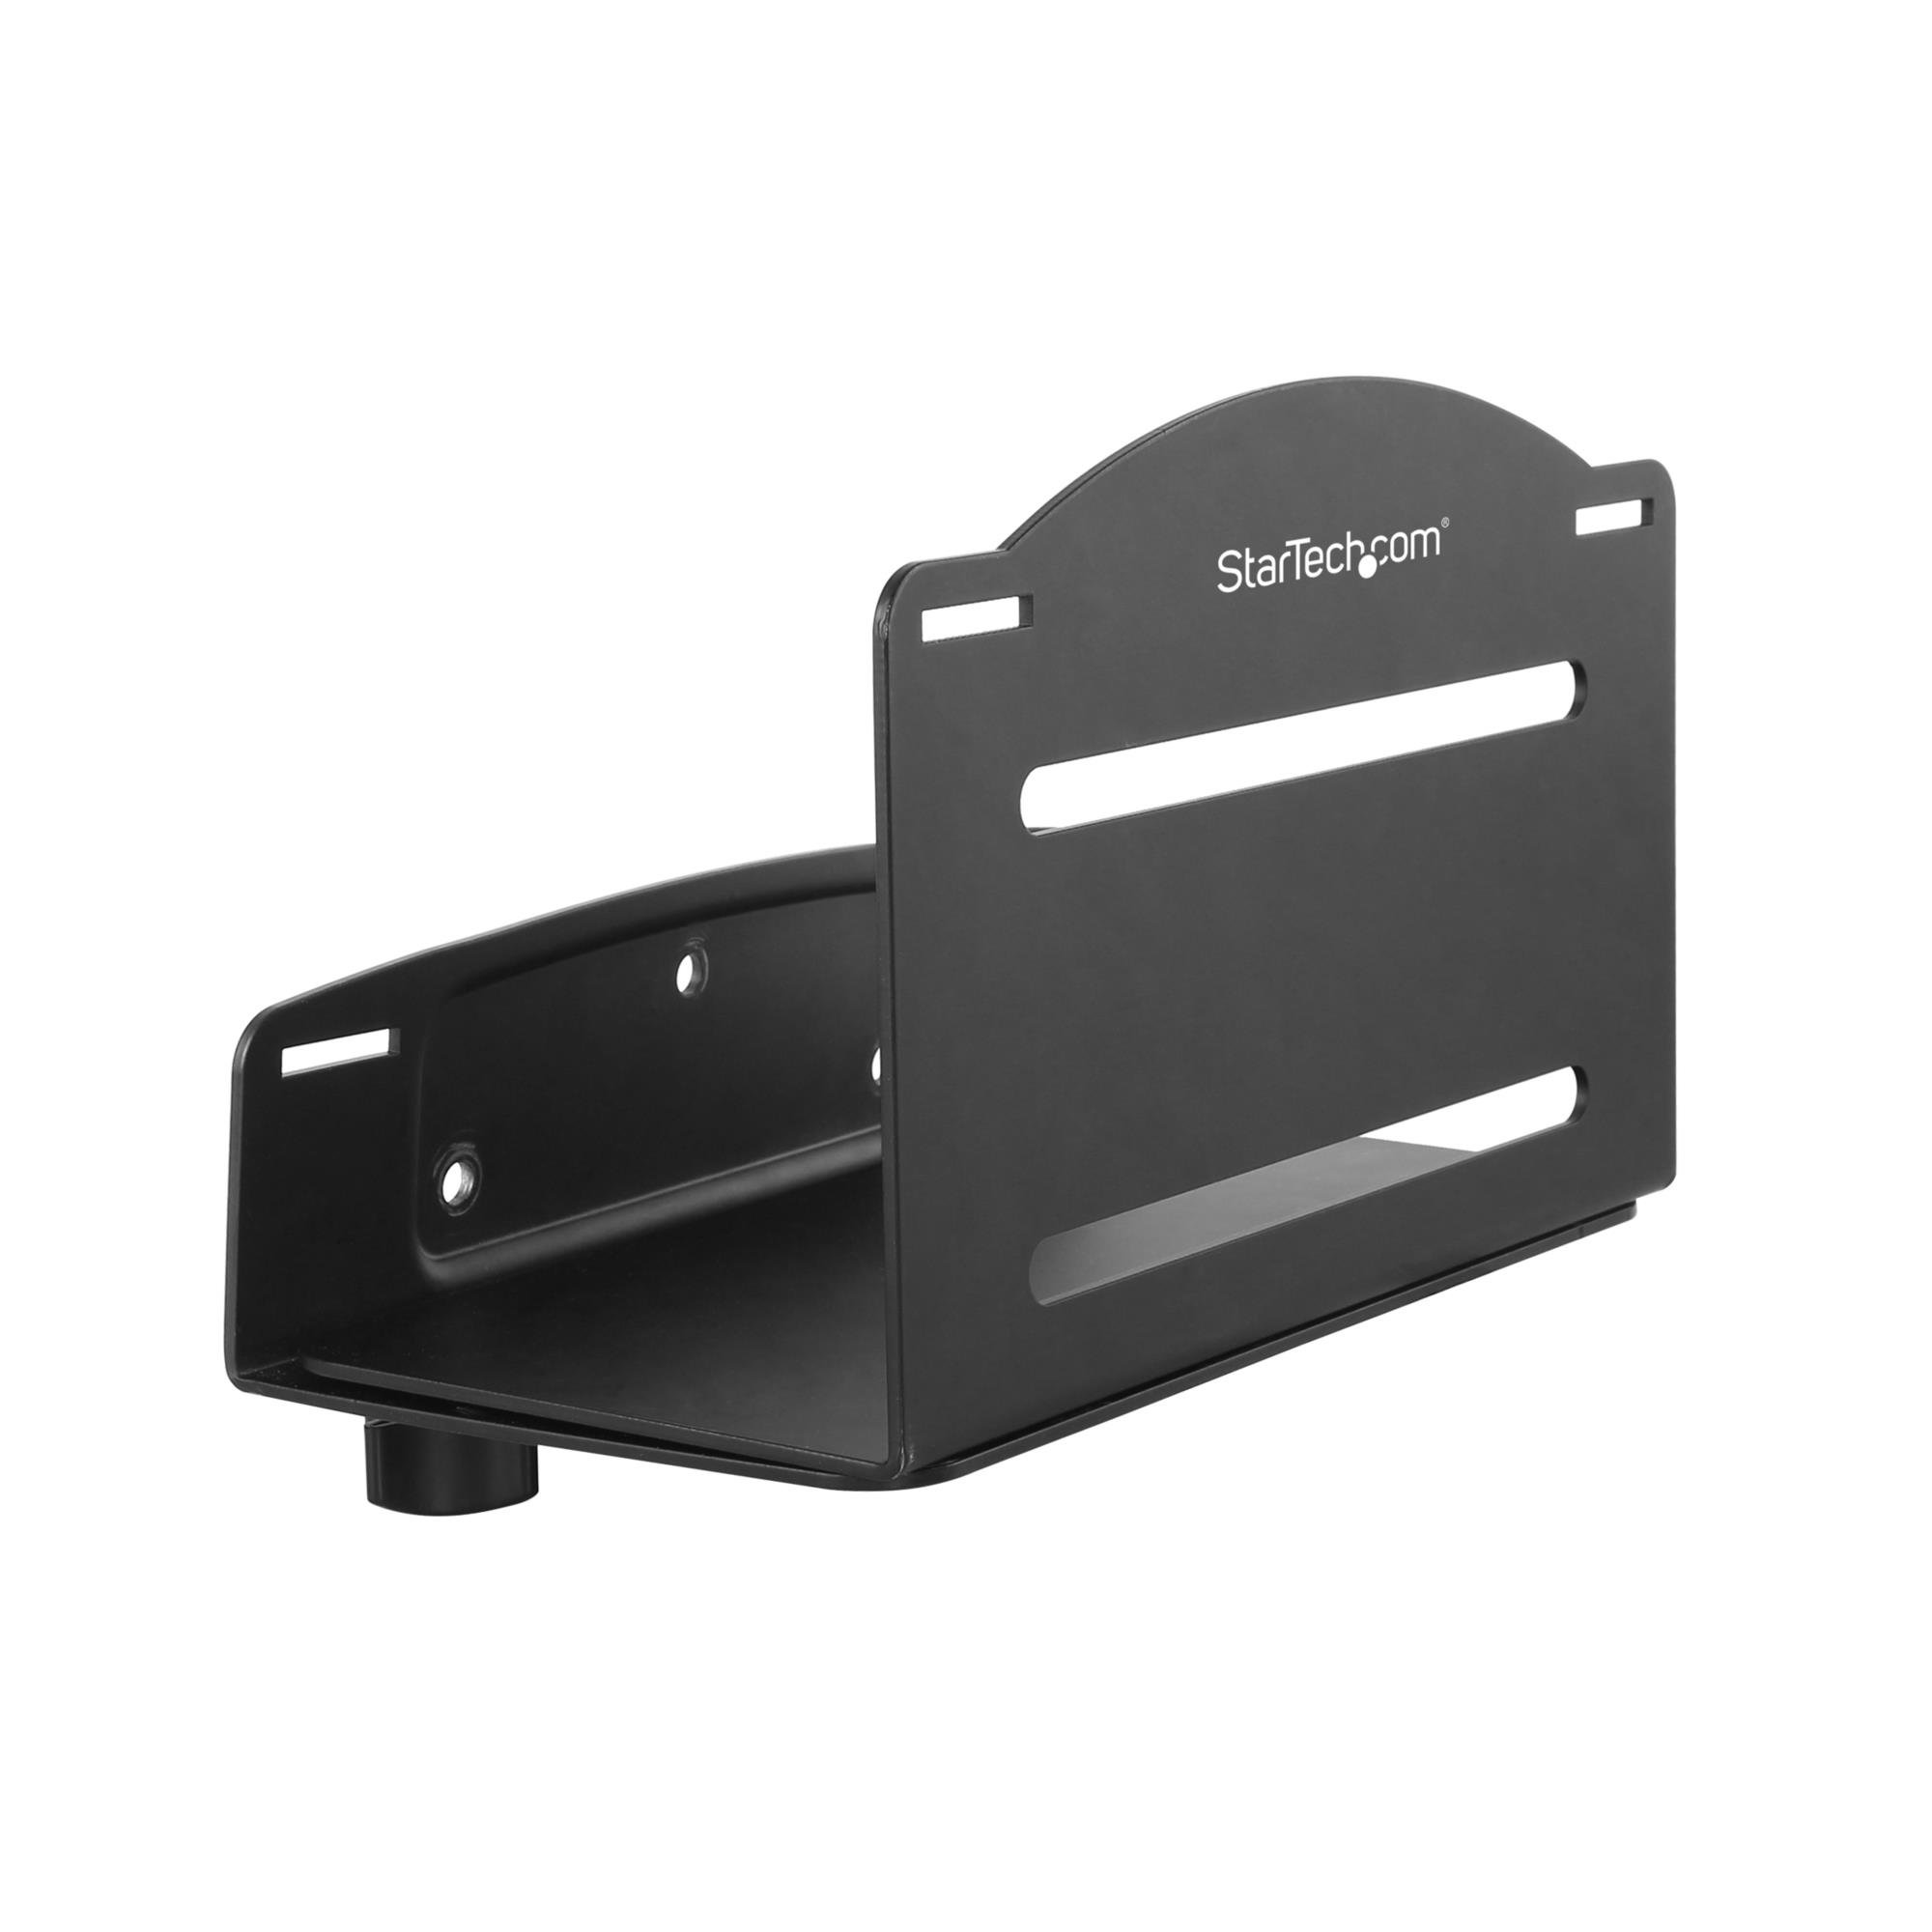 StarTech.com CPU Mount -æAdjustable Width 4.8in to 8.3in - Metal - Computer Wall Mount - PC Wall Mount - Computer Mounting Bracket